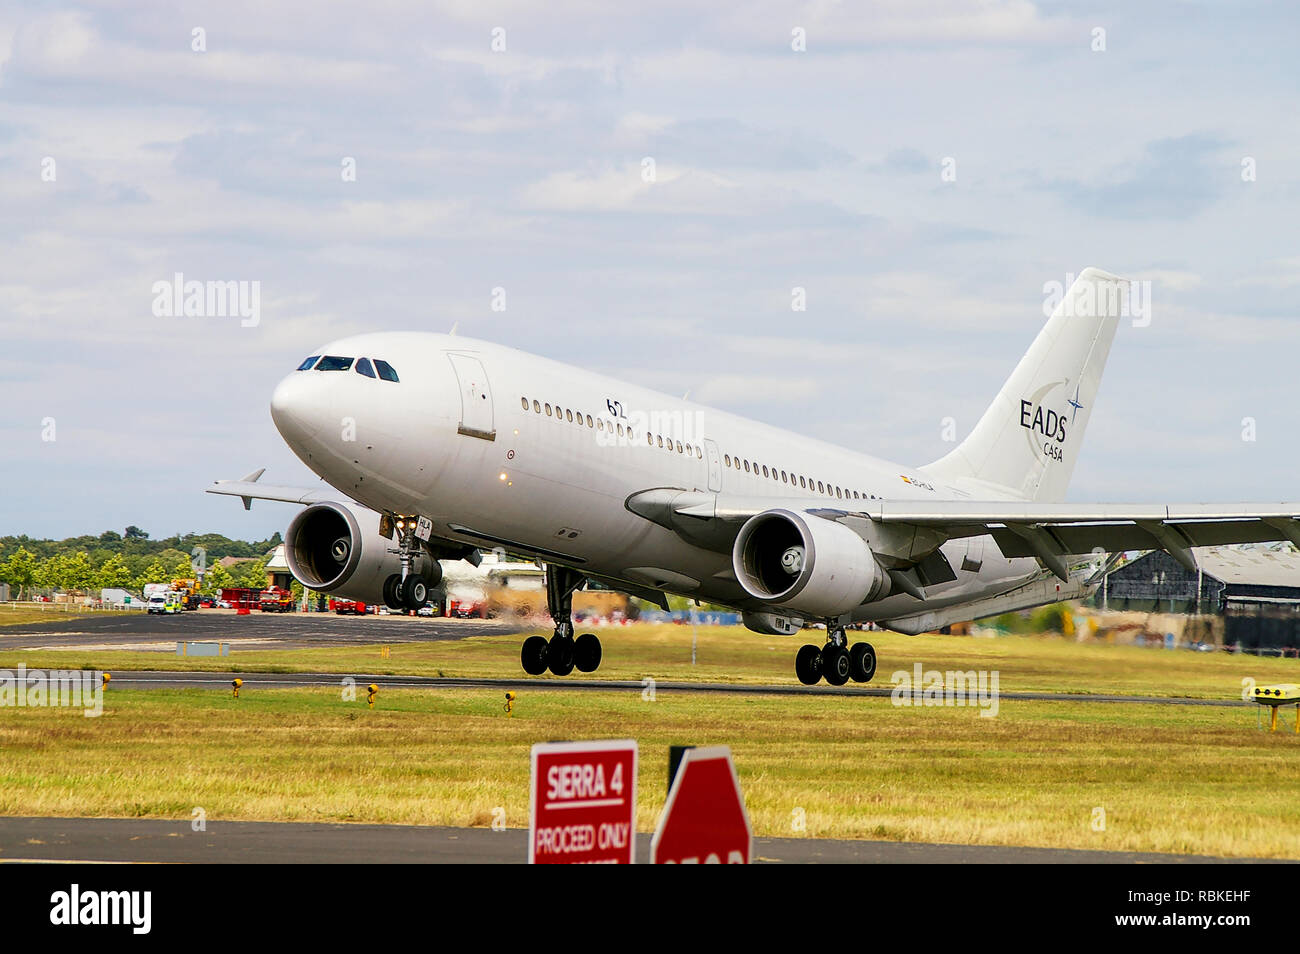 Tanker Plane Stock Photos & Tanker Plane Stock Images - Alamy